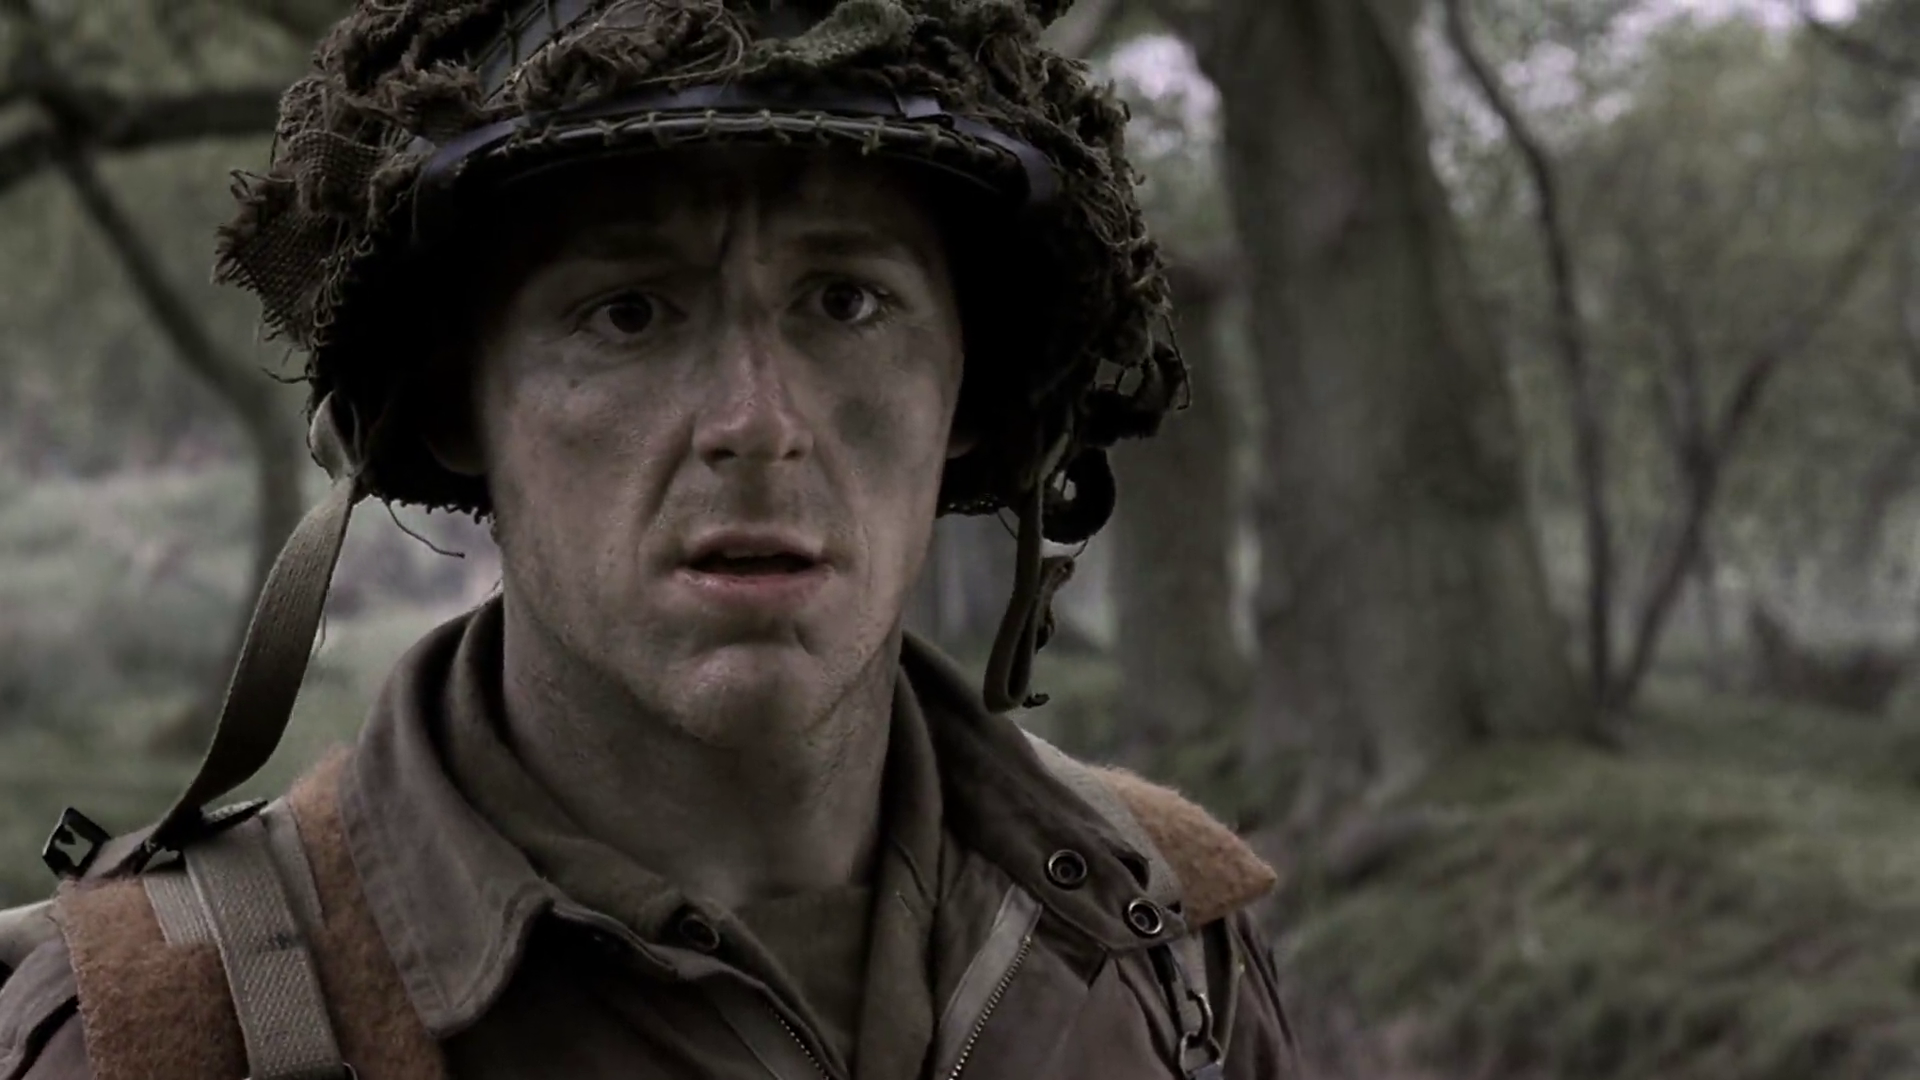 Band Of Brothers Season 1 Episode 2 Day Of Days 9 Sep 2001